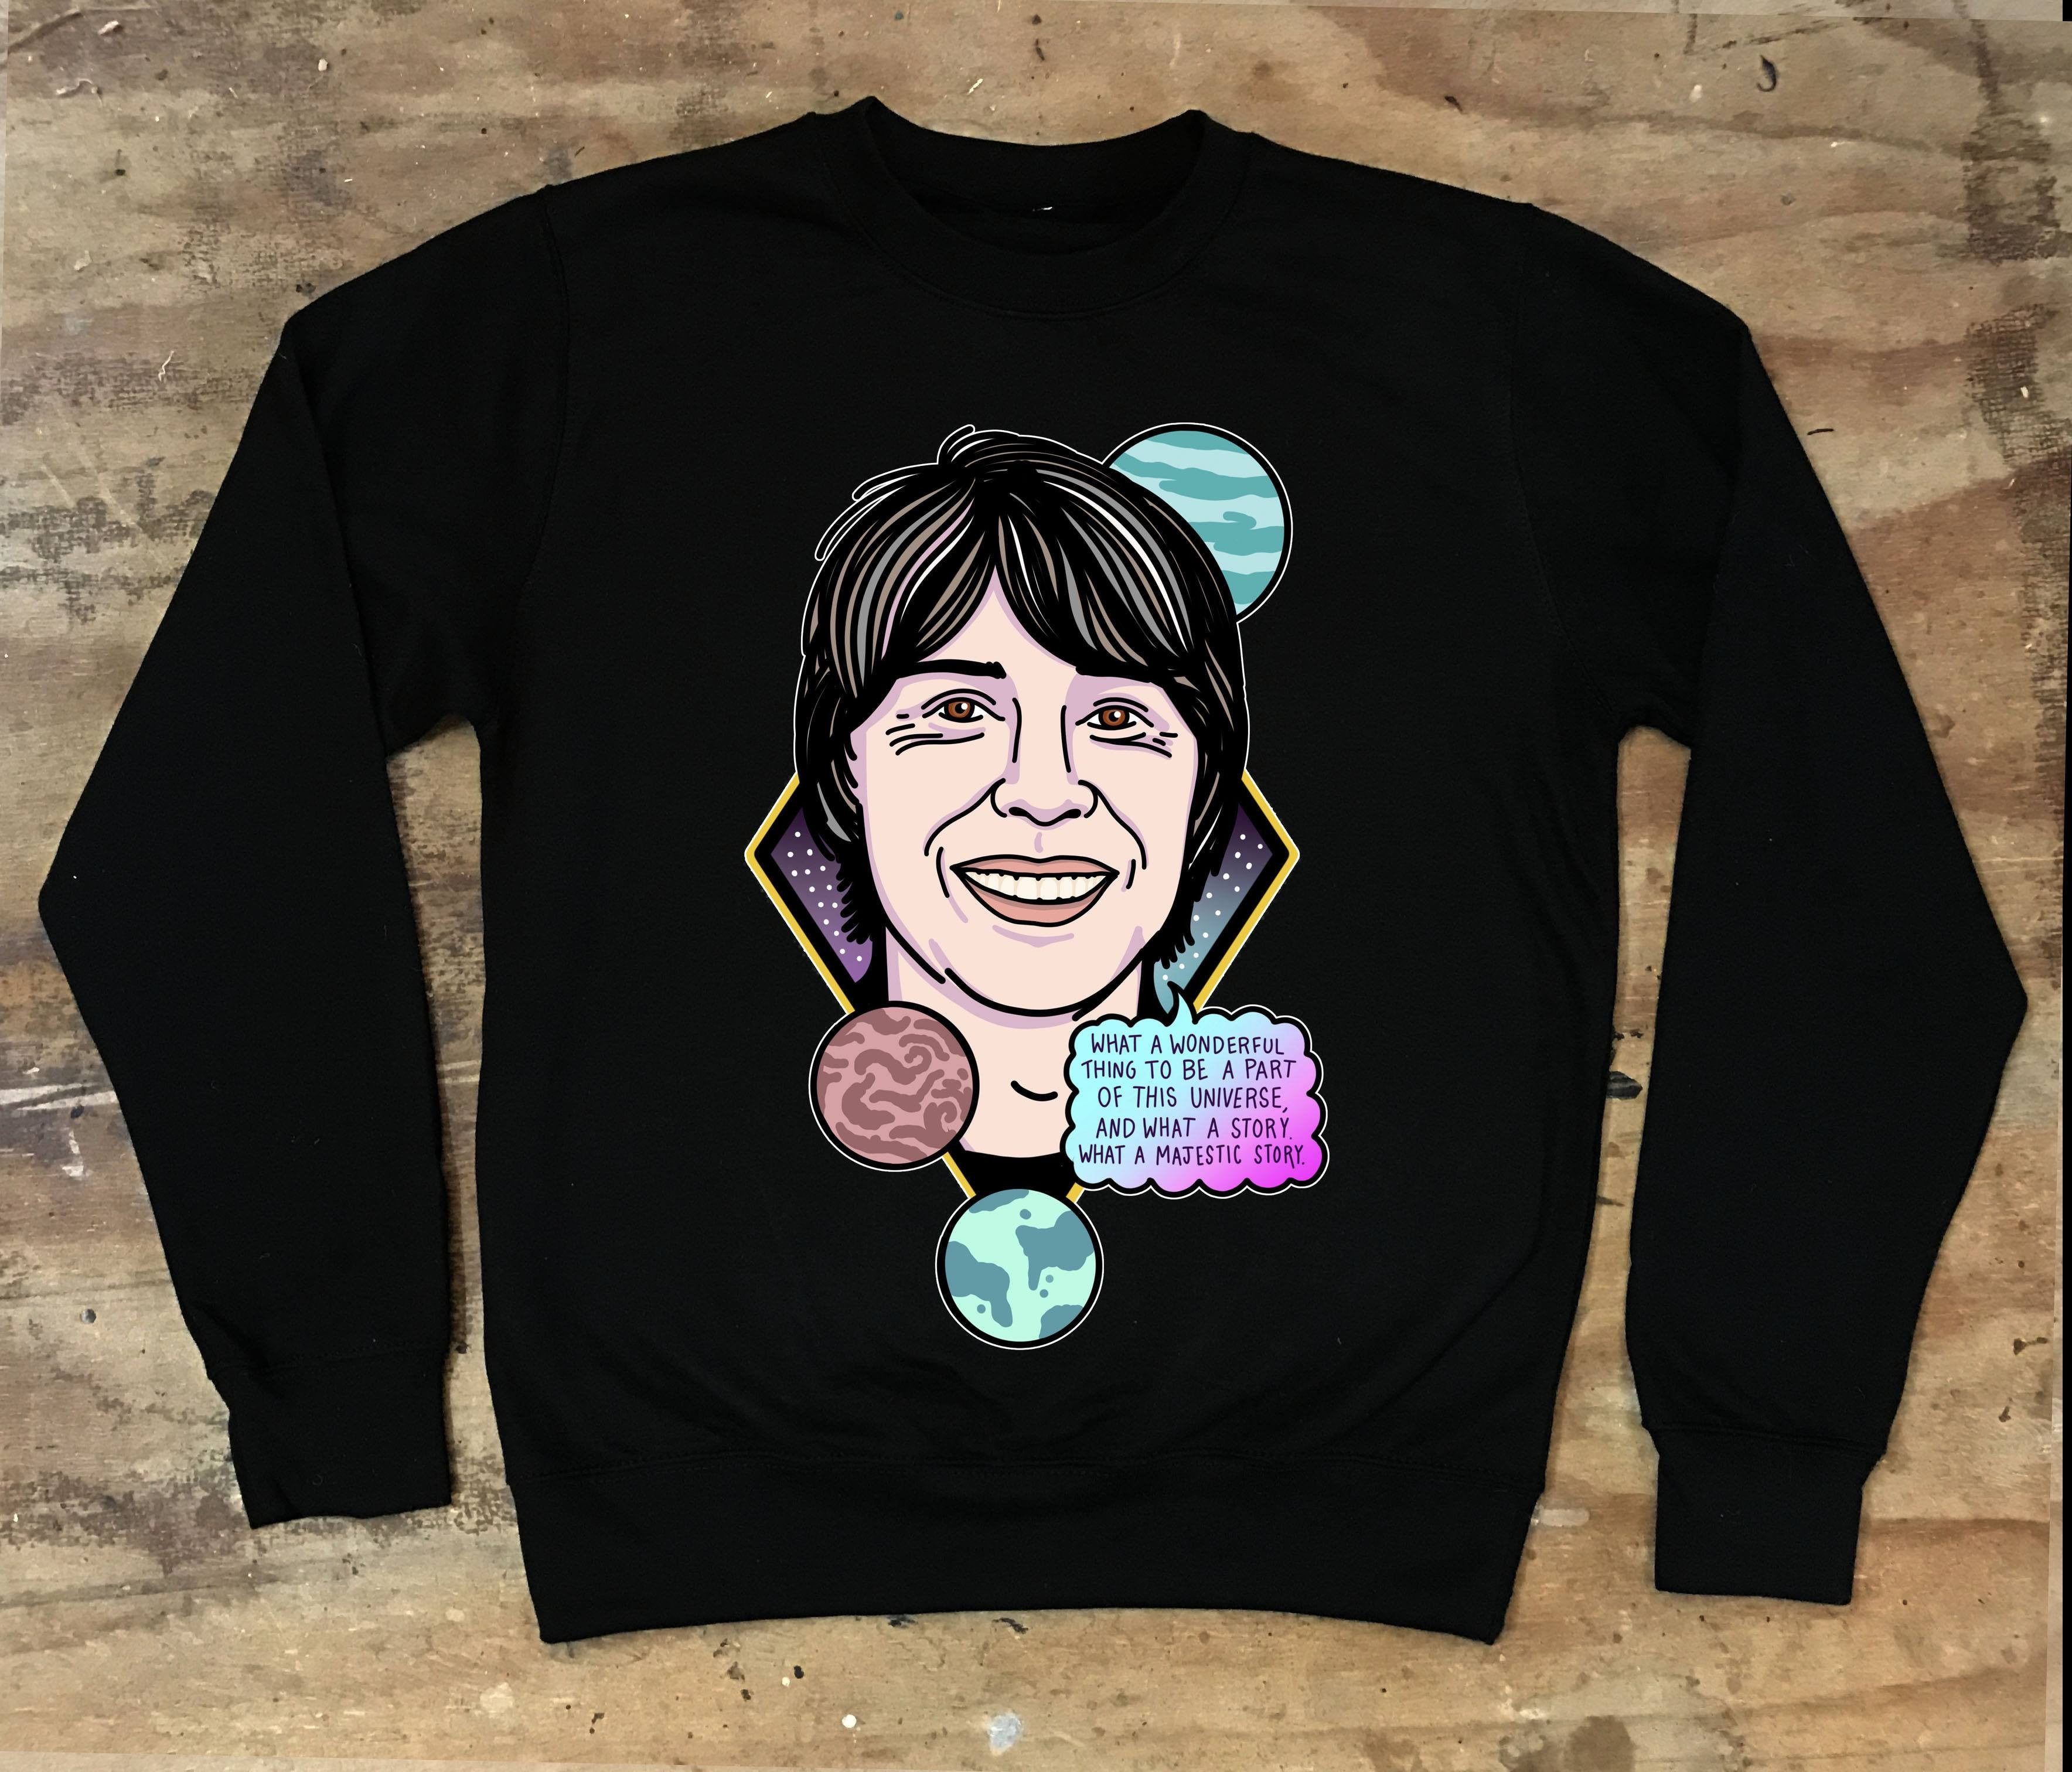 Brian Cox - What A Wonderful Thing To Be A Part Of Crew Neck Sweater - Jiggle Apparel